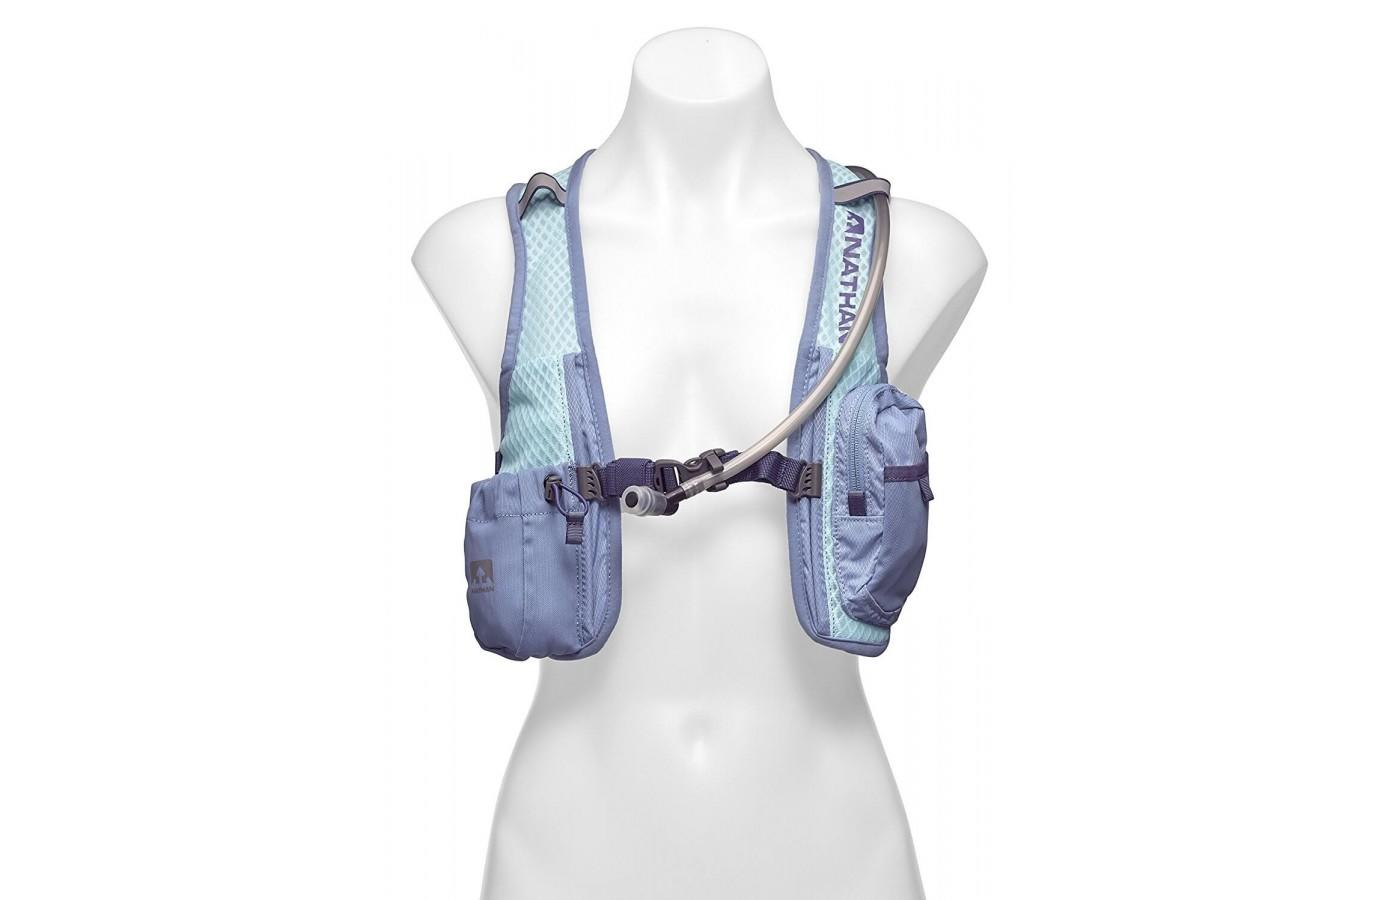 Nathan intensity race vest is a great lightweight hydration vest.